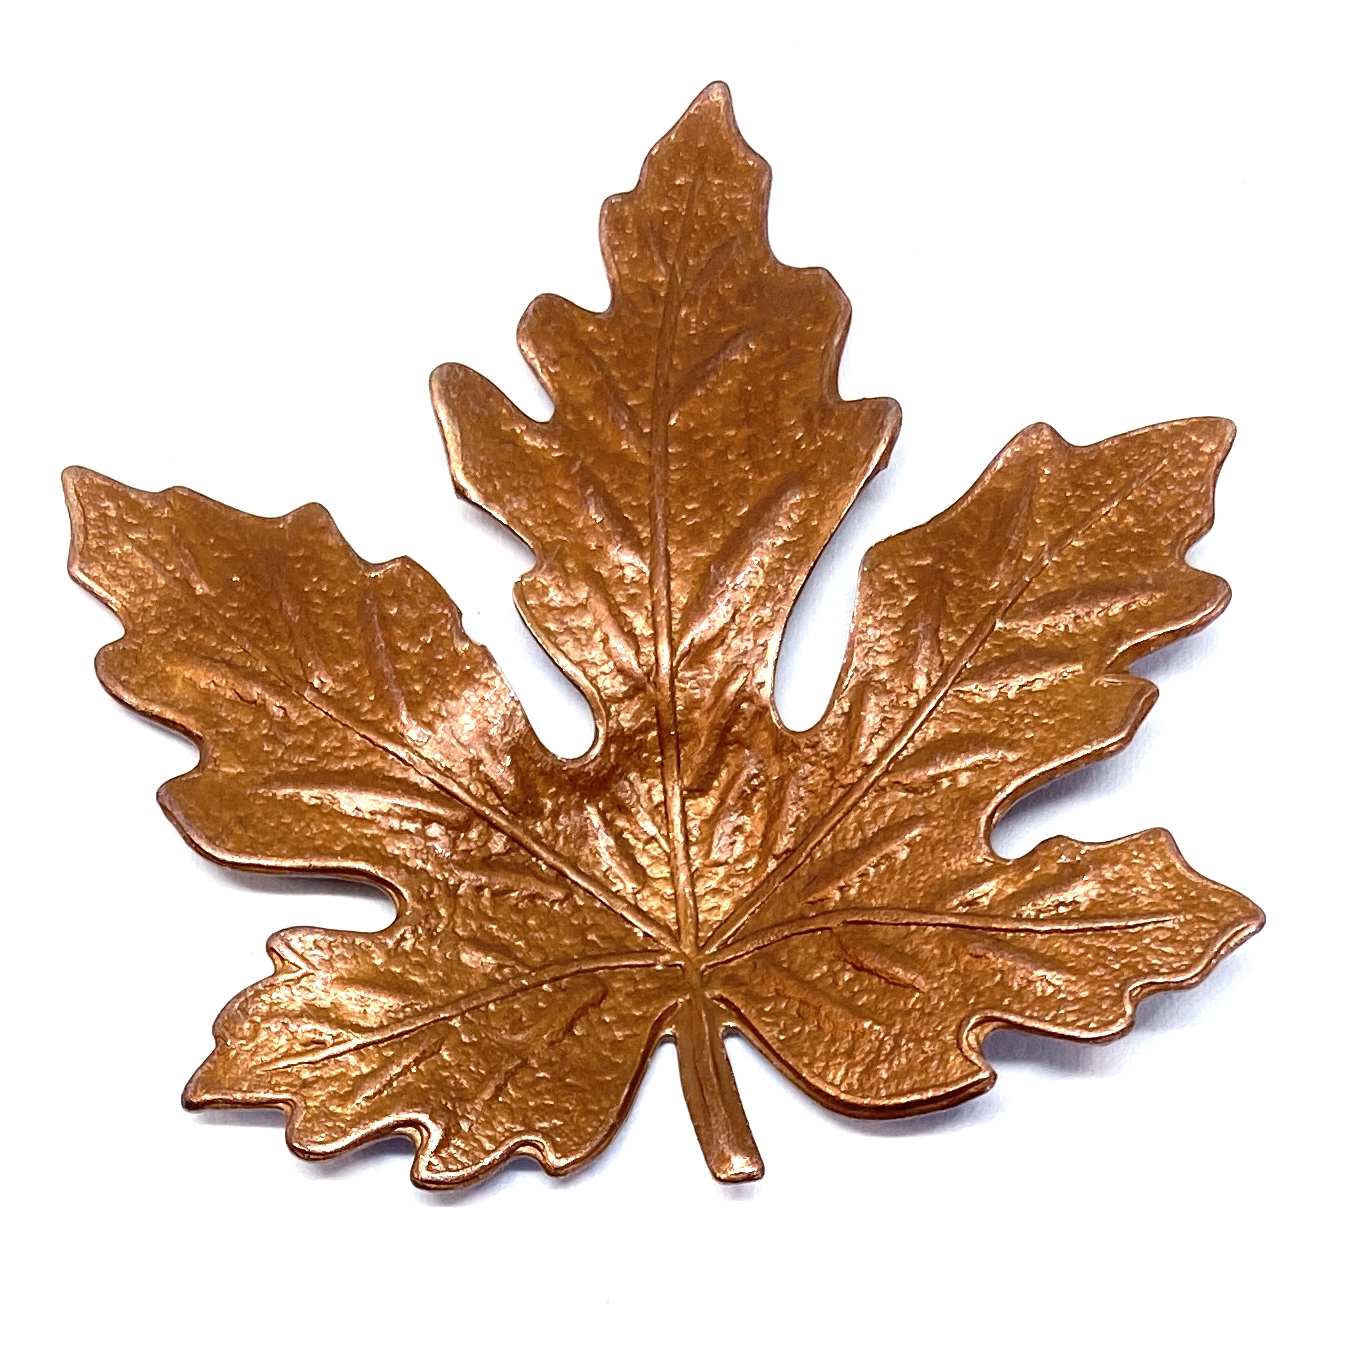 brass leaves, jewelry making, gingerbread brass, 01685, B'sue Boutiques, nickel free jewelry supplies, US made jewelry supplies, vintage jewelry supplies, maple leaves, antique copper, 41mm